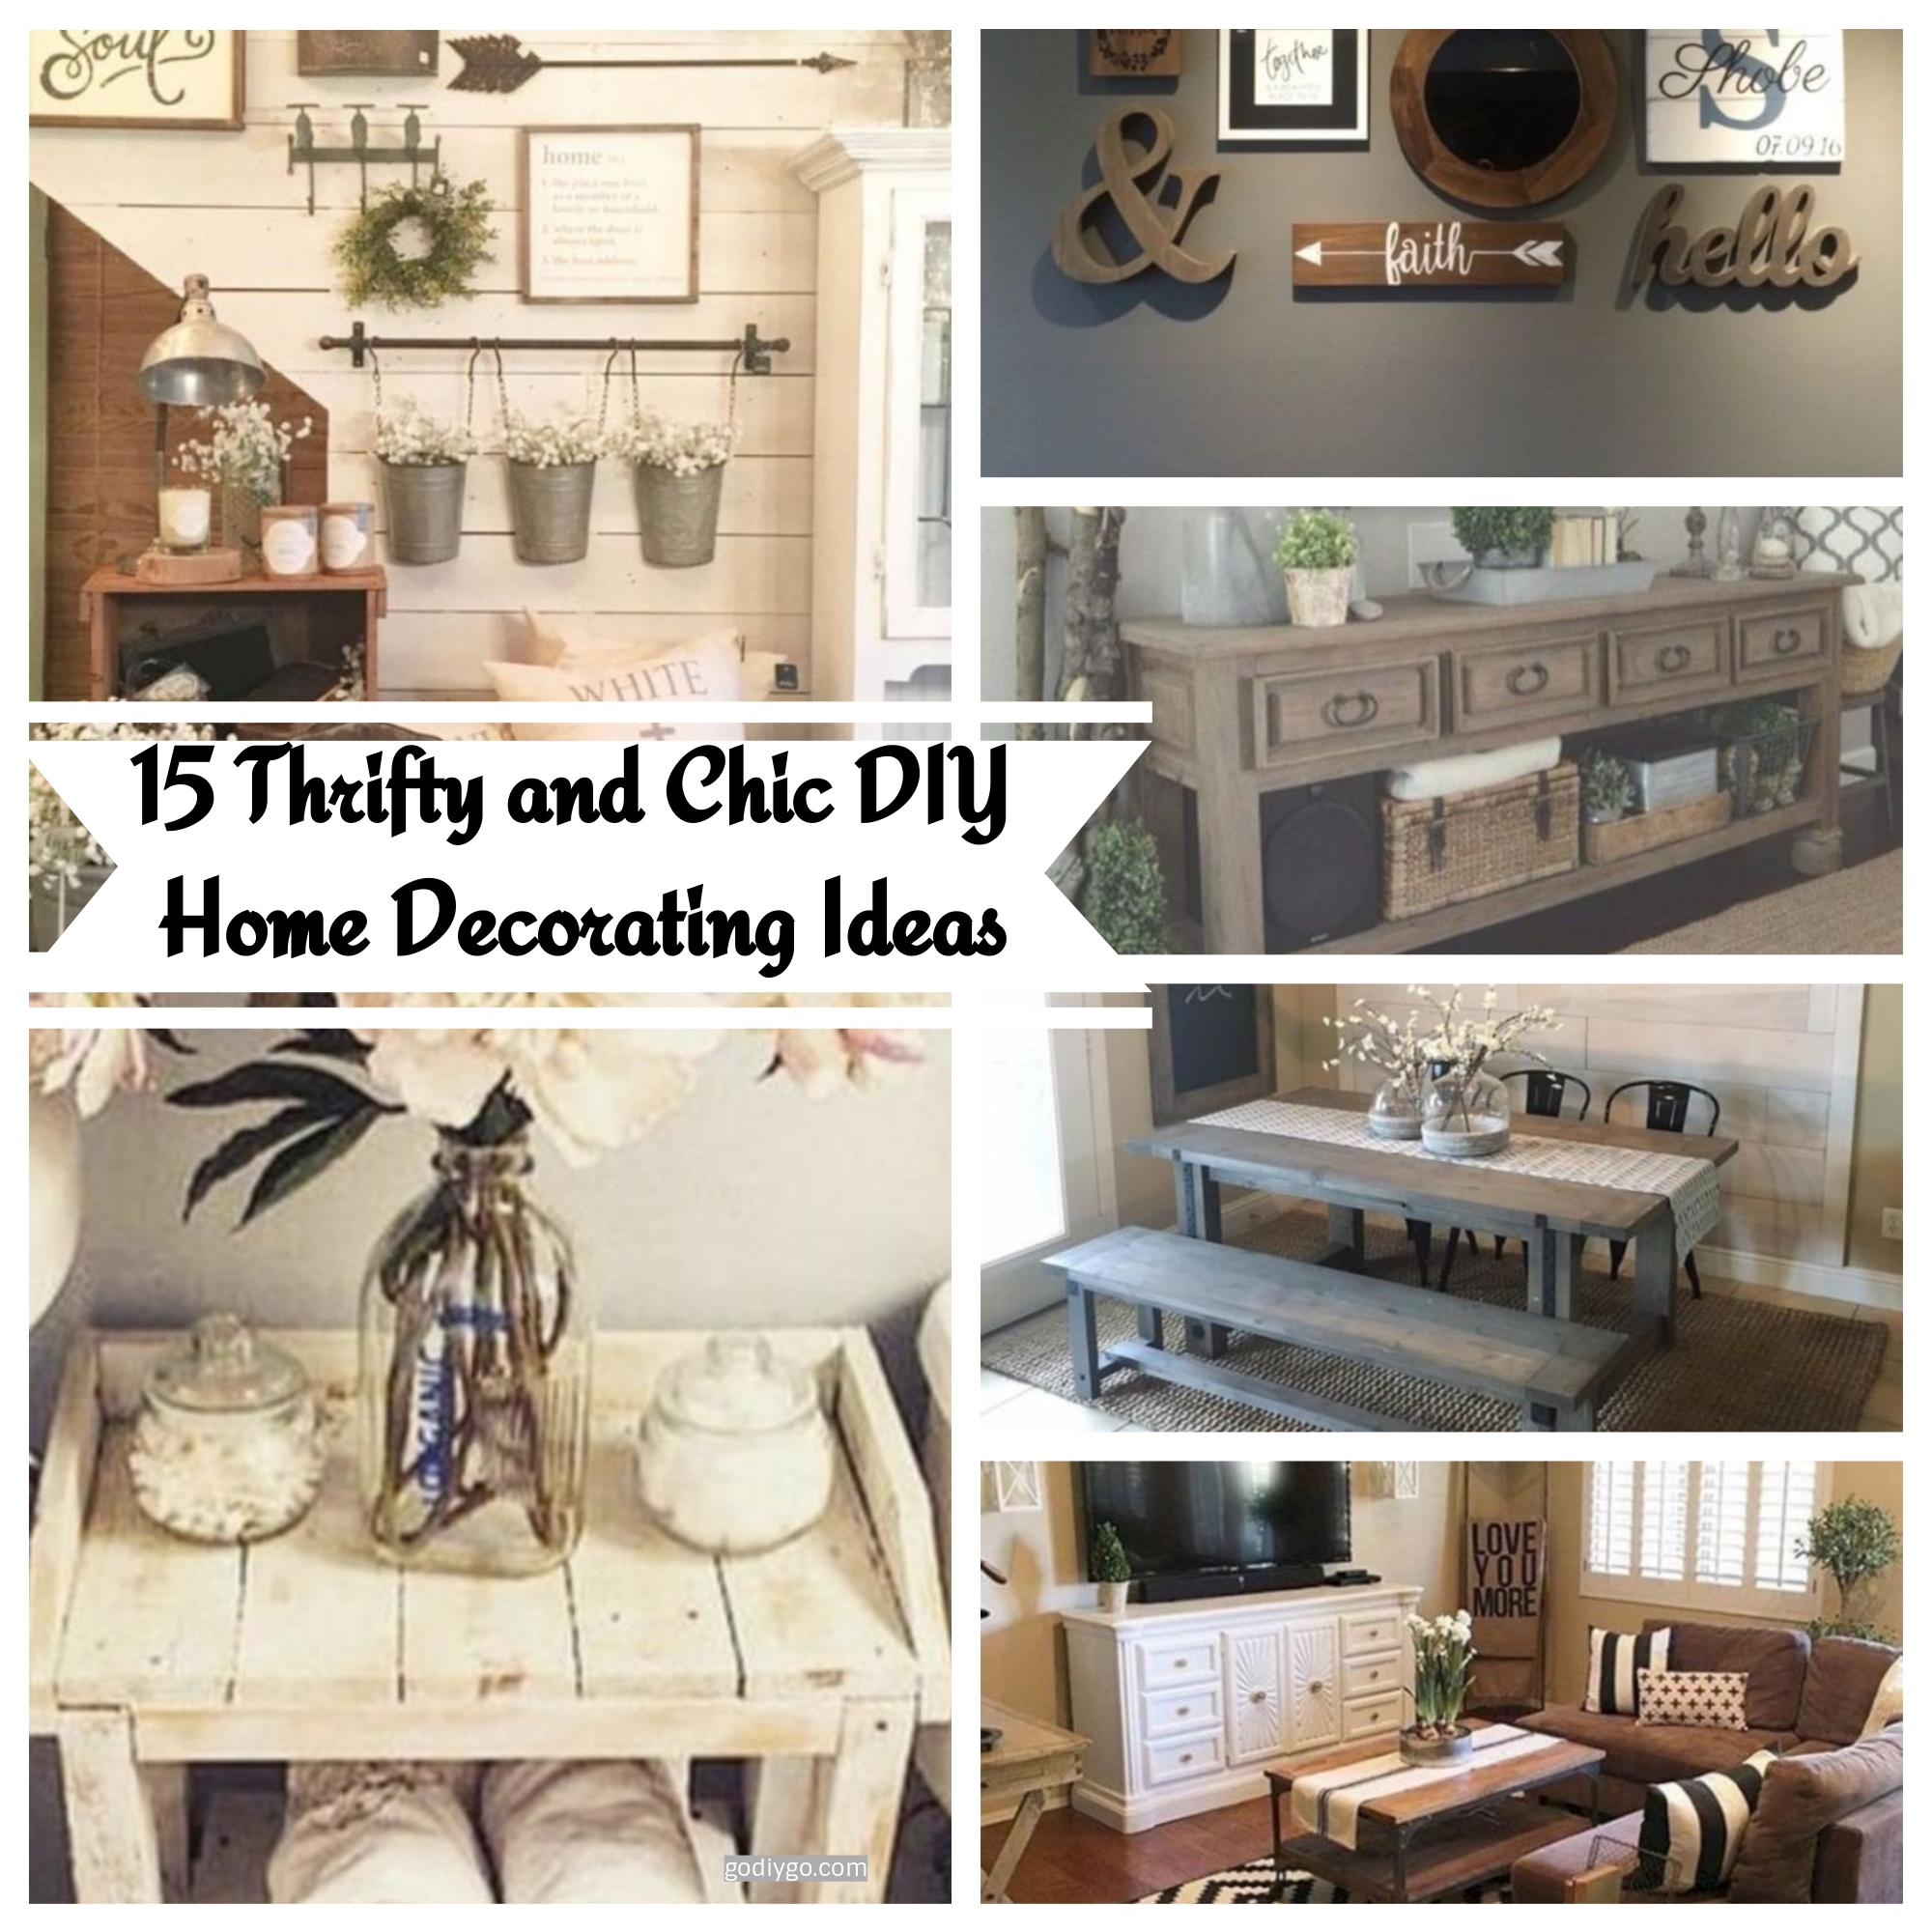 Home Design Ideas Build: 15 Thrifty And Chic DIY Home Decorating Ideas